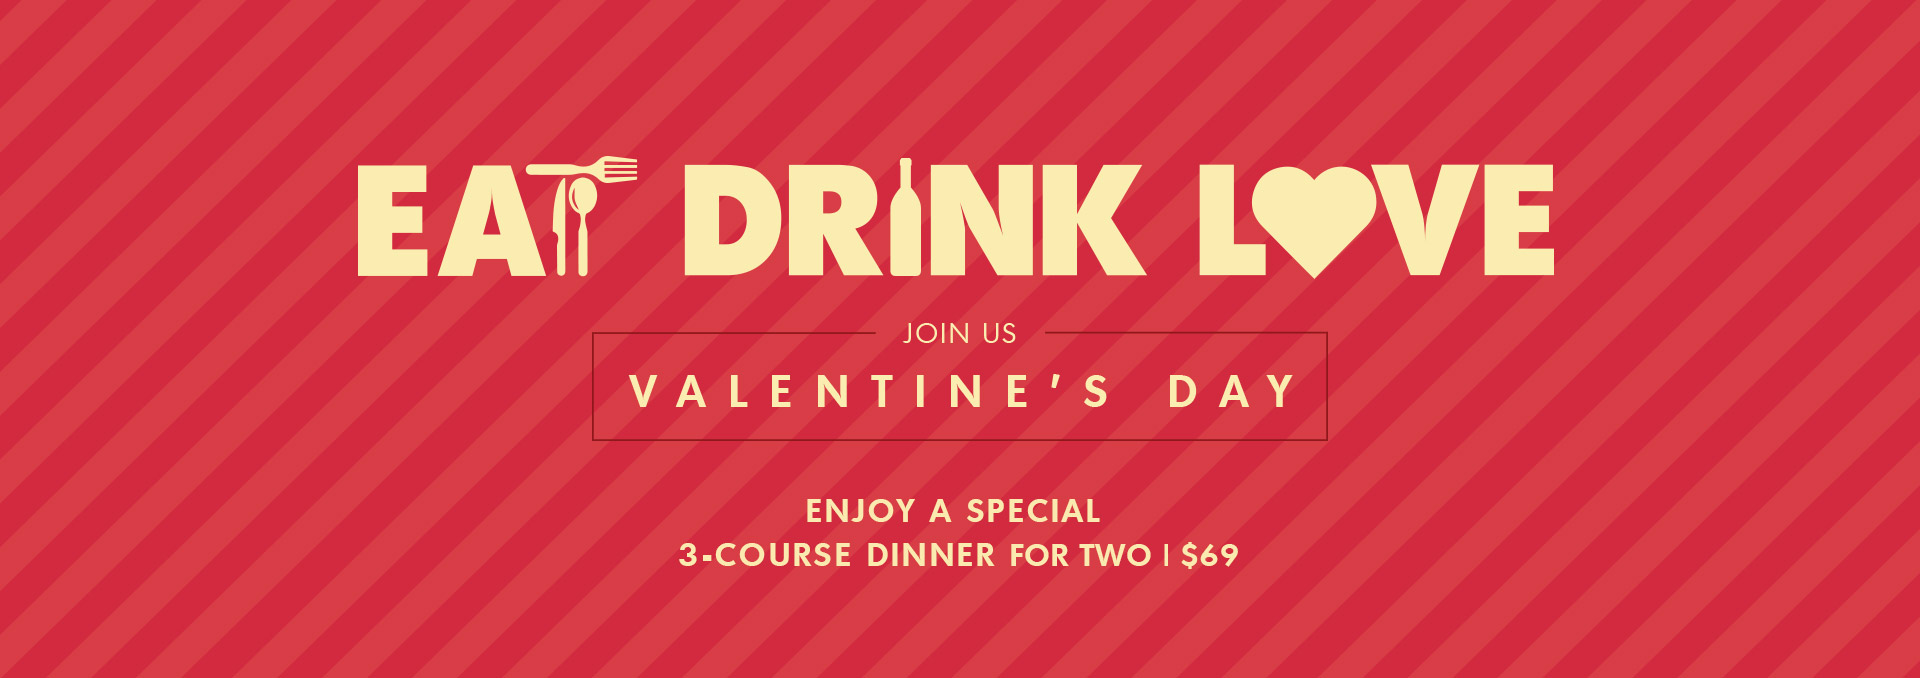 Eat Drink Love at Moxie's this Valentine's Day